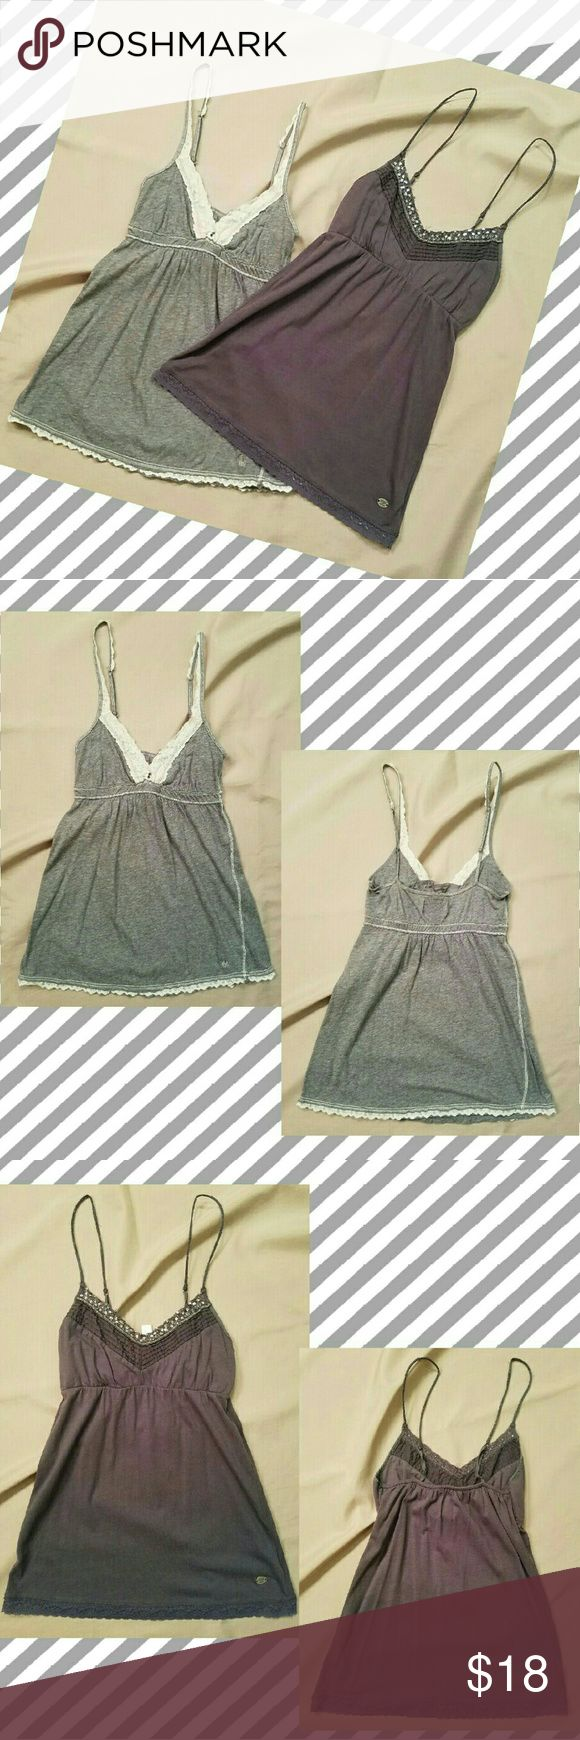 💲Drop⤵Abercrombie Fitch Tank Top/Camisole Bundle ♥Heather Grey Strappy Deep V tank with baby-doll waist. Loose fit below bust, adjustable straps. Cream colored lace lines bust, staps, & hem. Two beads adorn center.  Size: Small 100 % Cotton   ♥Dark Grey Strappy Deep V tank with baby-doll waist. Loose fit below bust,  adjustable straps. Pleated styling at top. Dark grey lace lines bust & hem, sequins & beading also attached to the top lace lining. Size: Medium Body: 55% Cotton, 45% Modal (a…